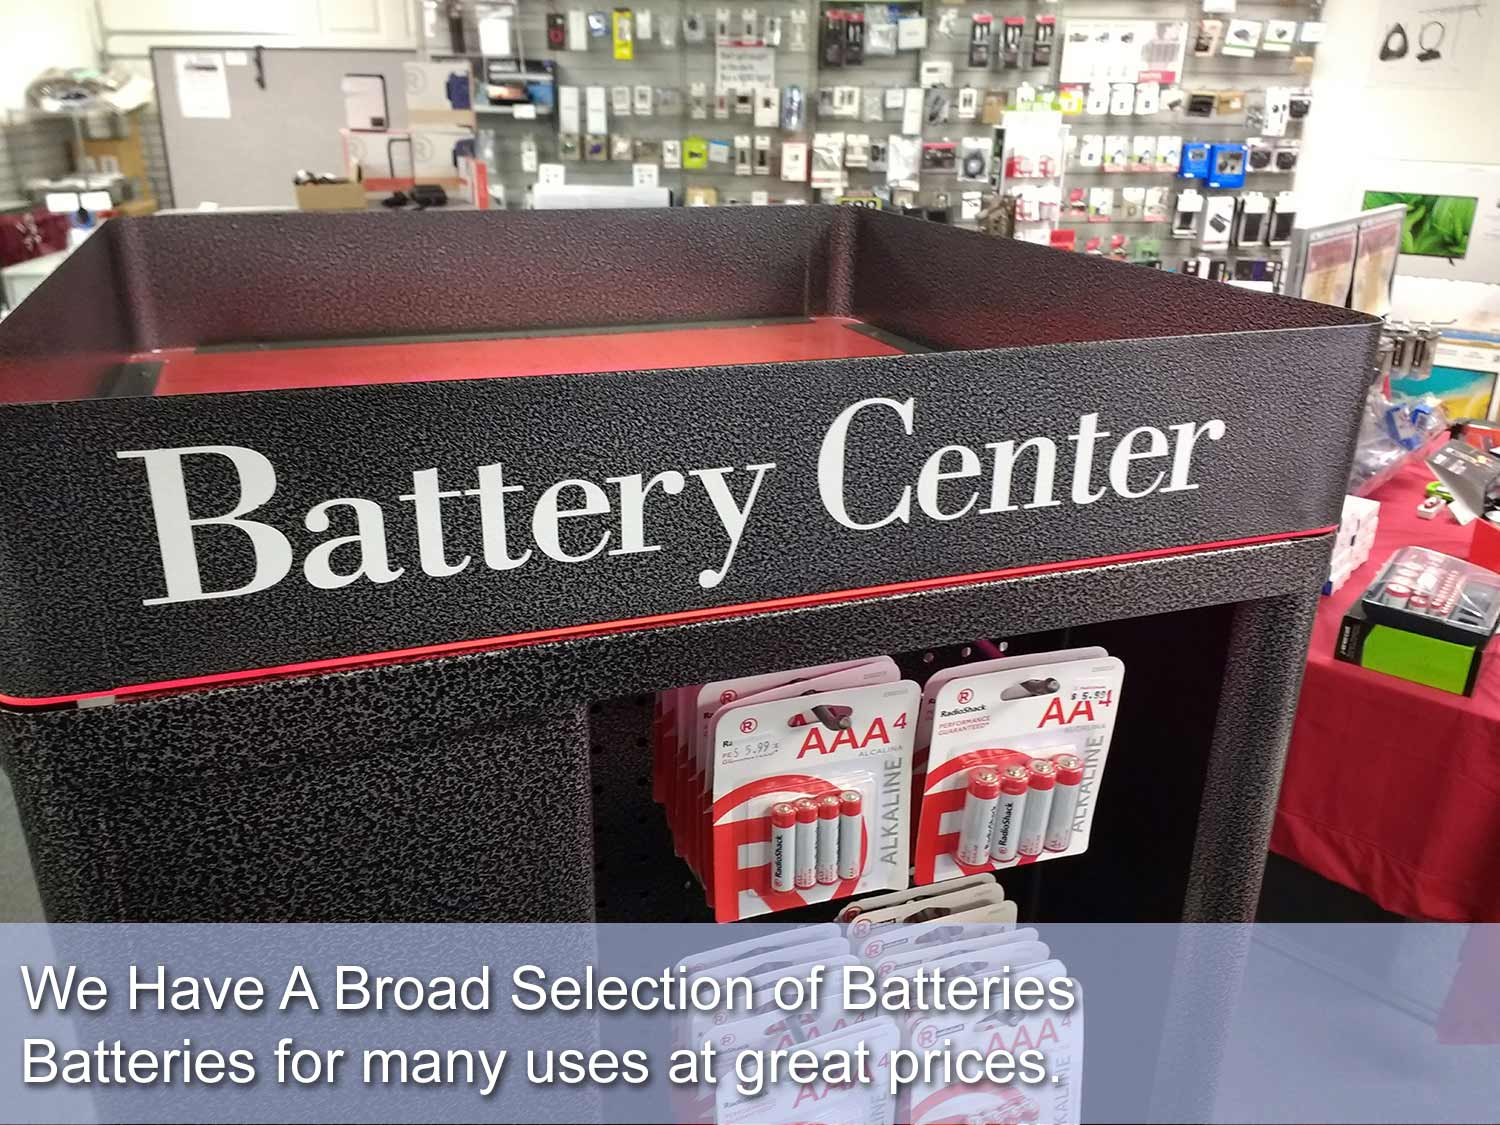 We are the battery center for Leelanau County. We stock a broad selection of batteries for many uses and at great prices.